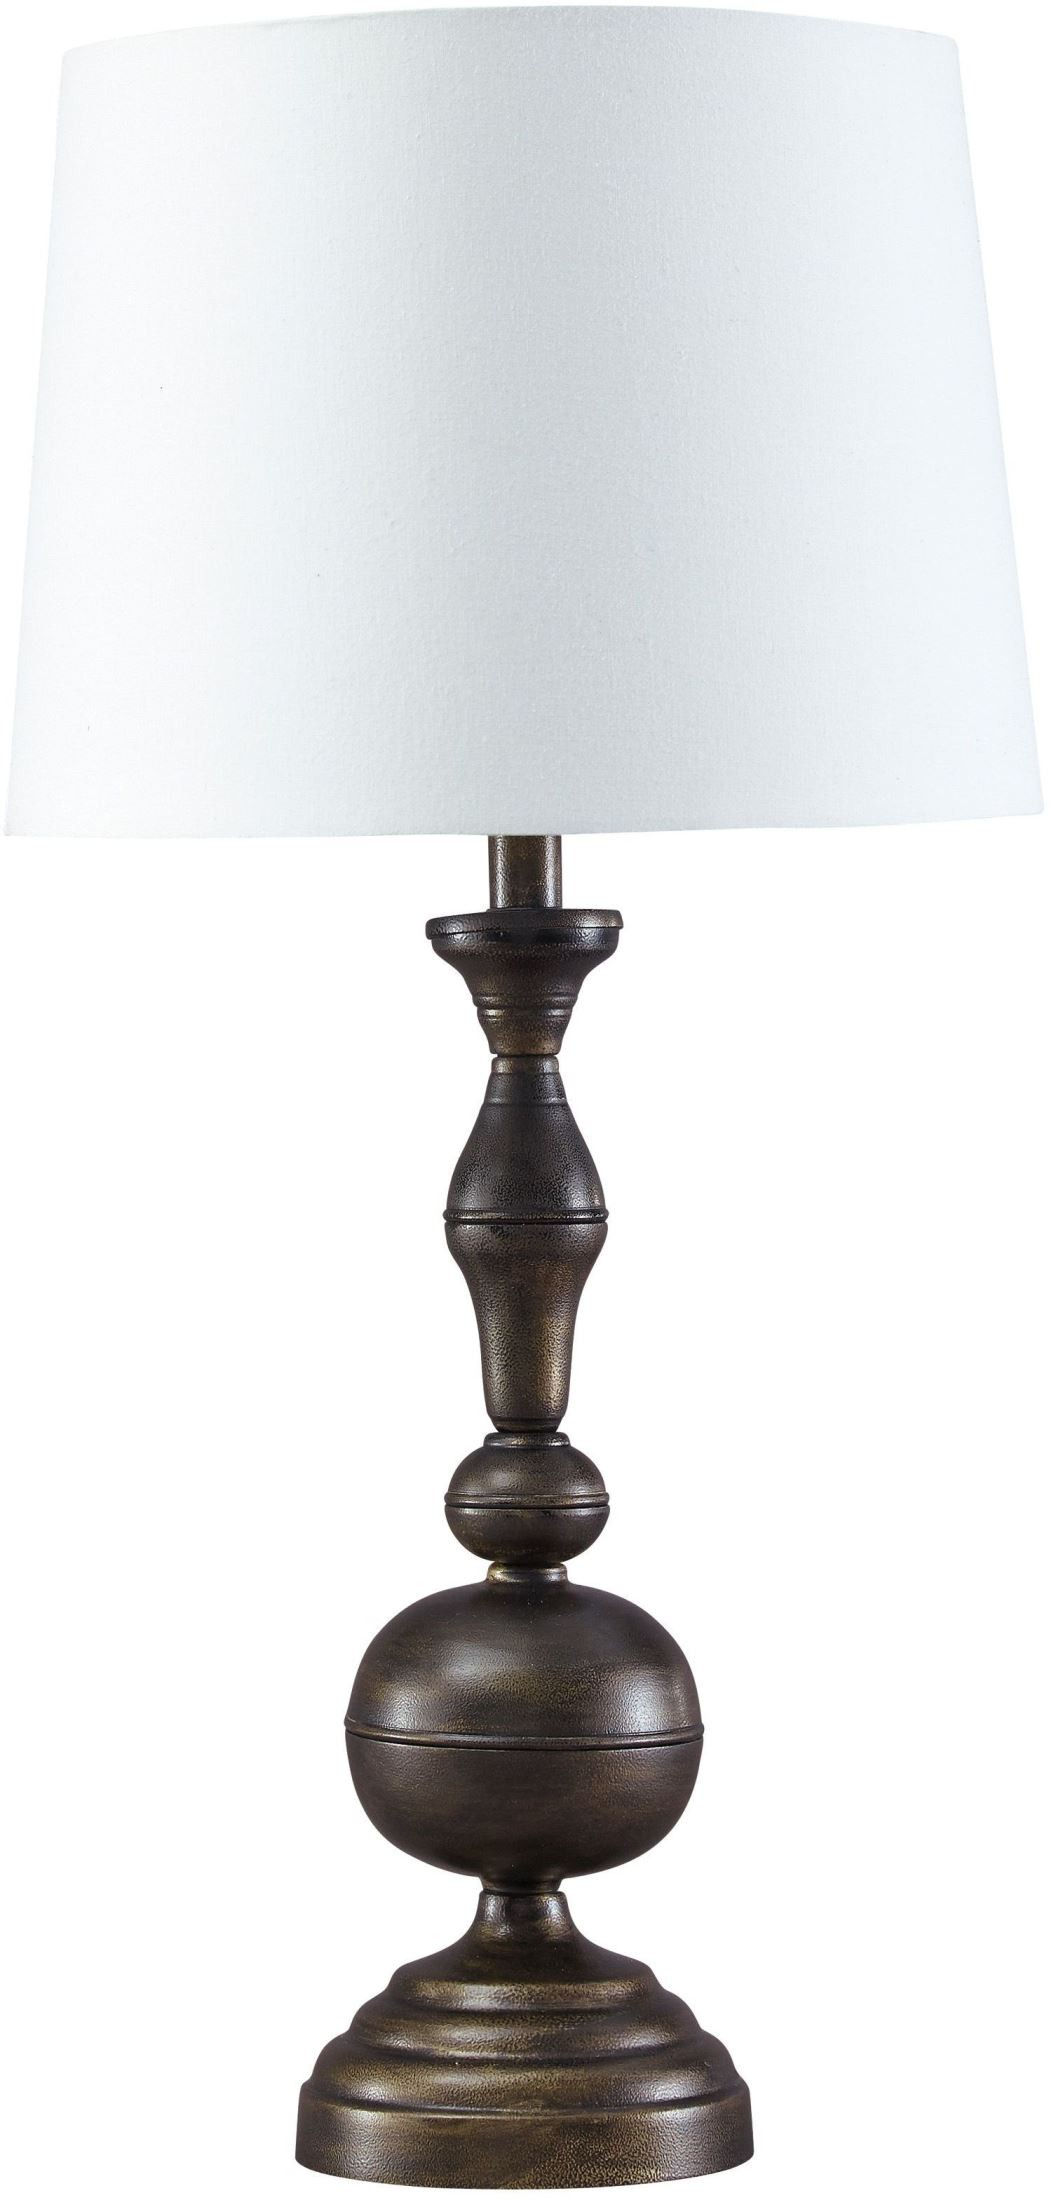 Aadi Antique Brass Metal Table Lamp Set Of 2 From Ashley